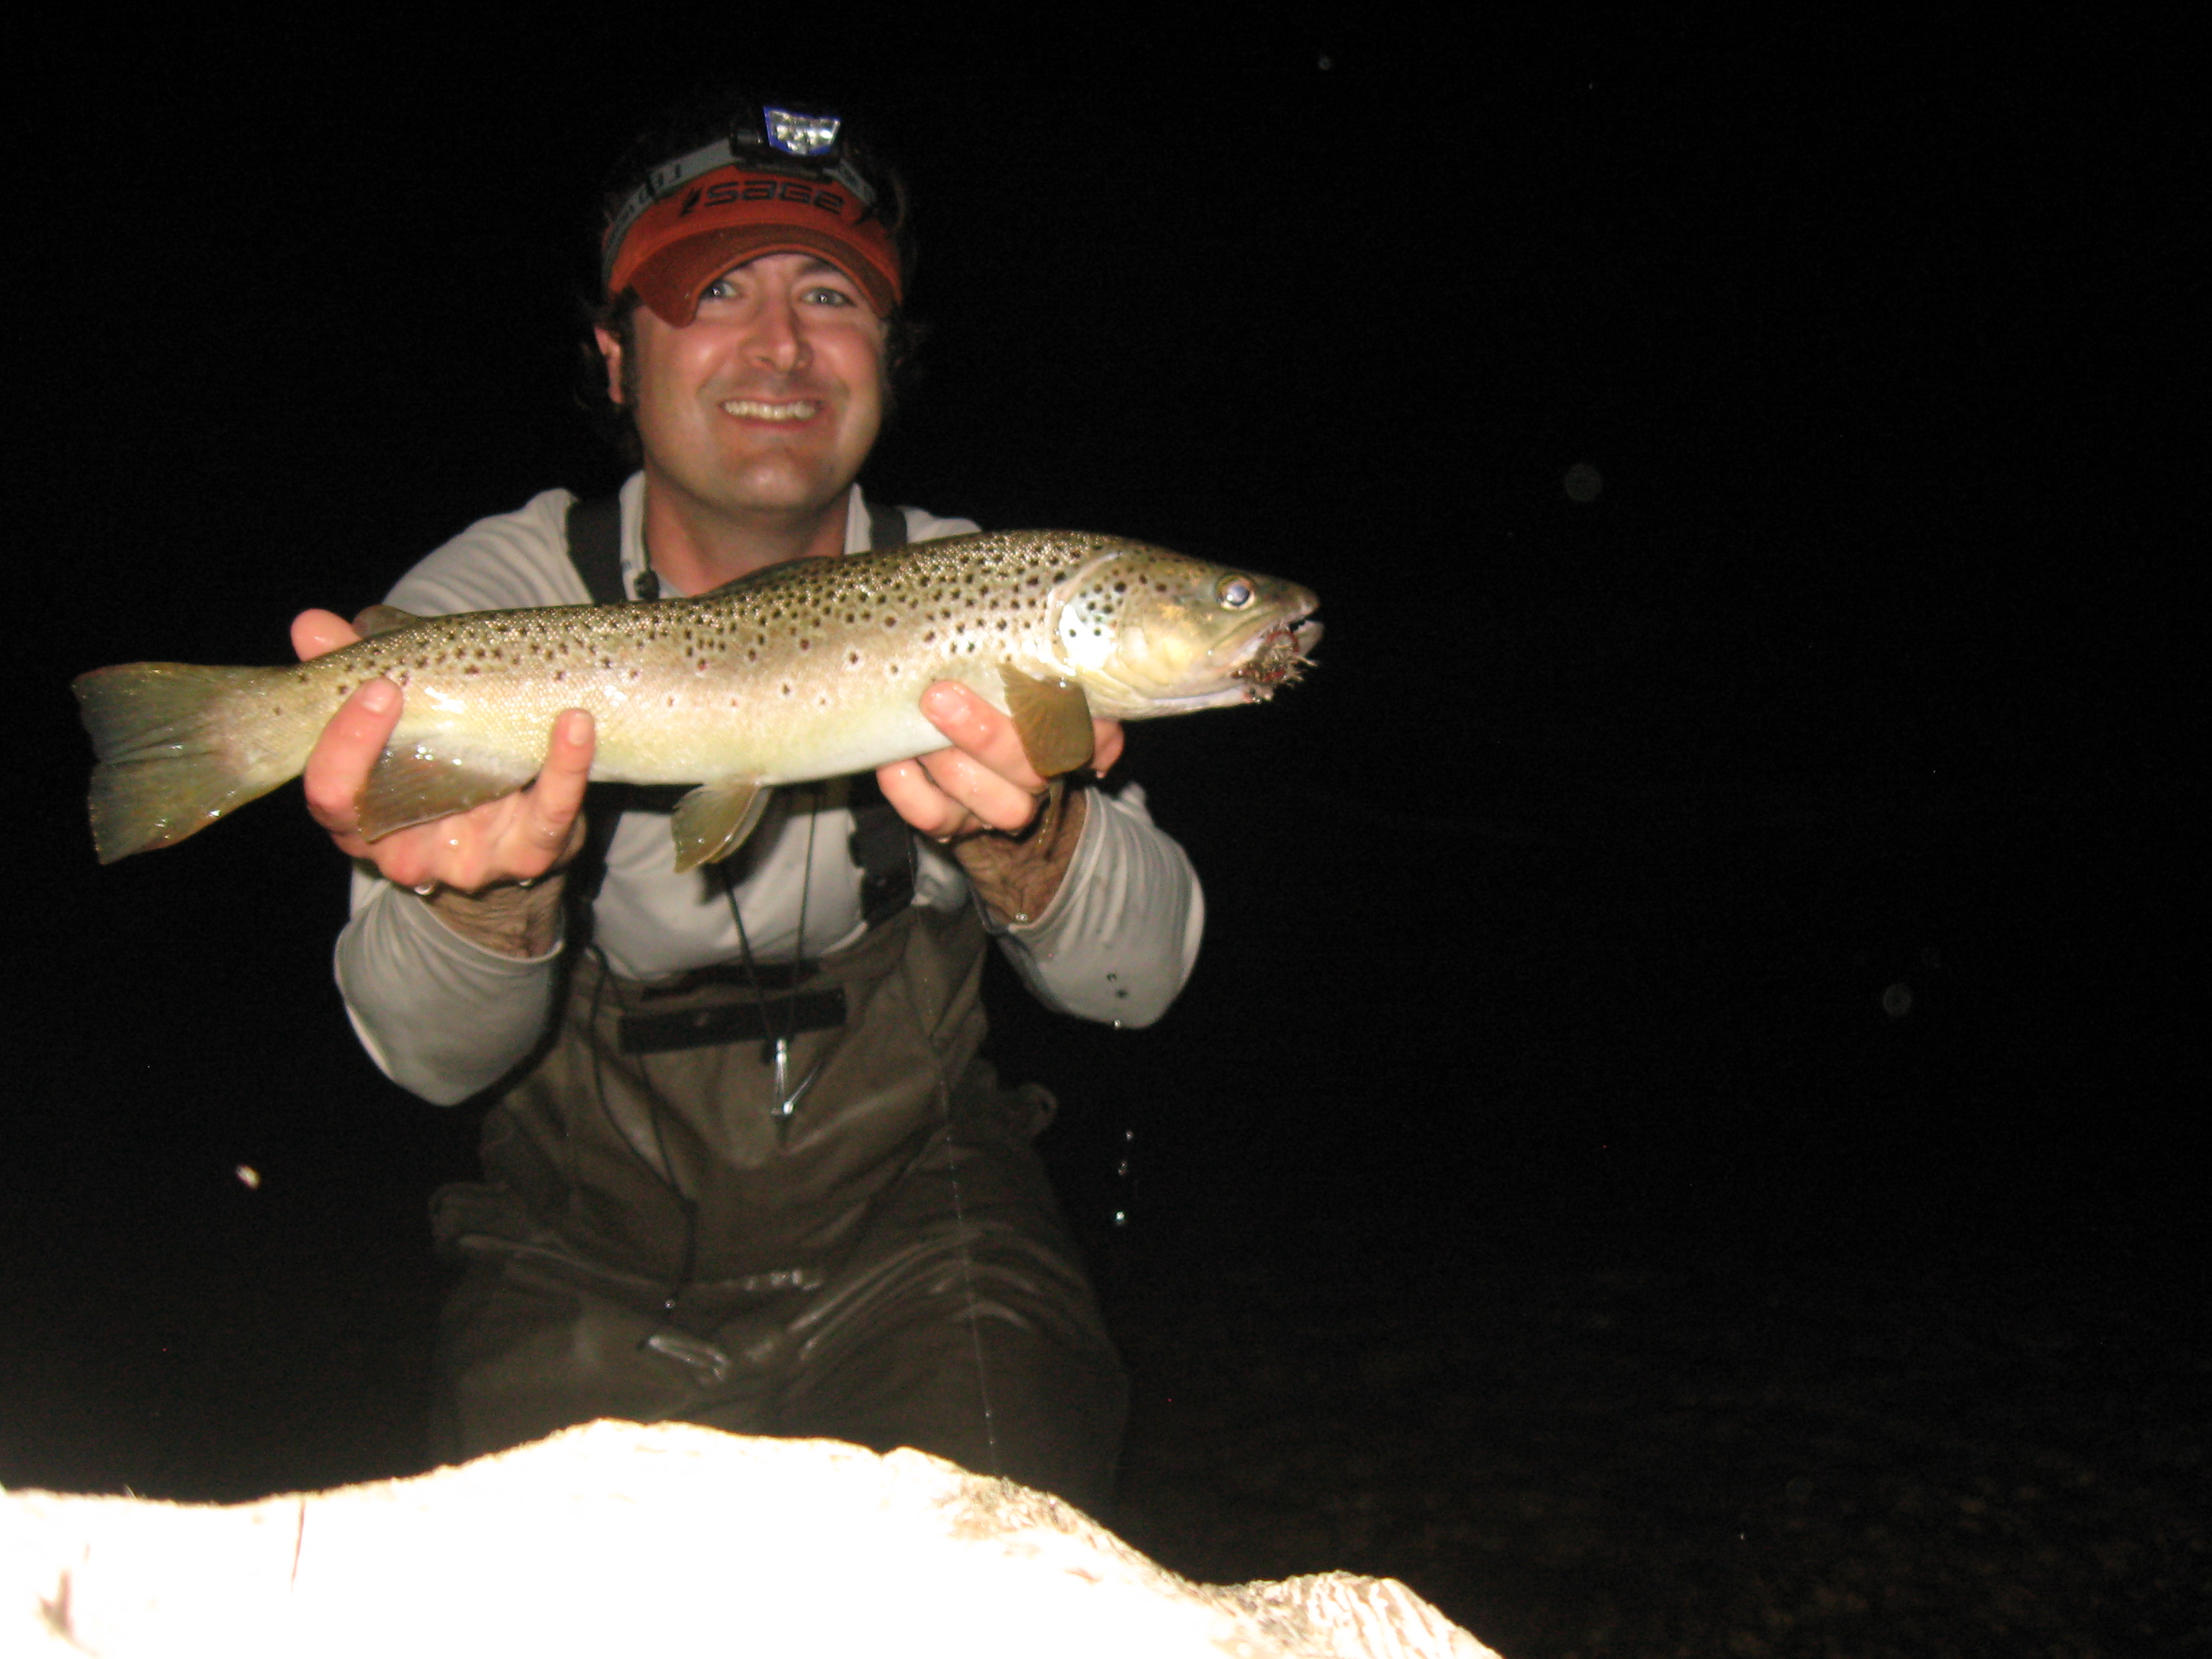 Brown trout caught on a mouse fly at night